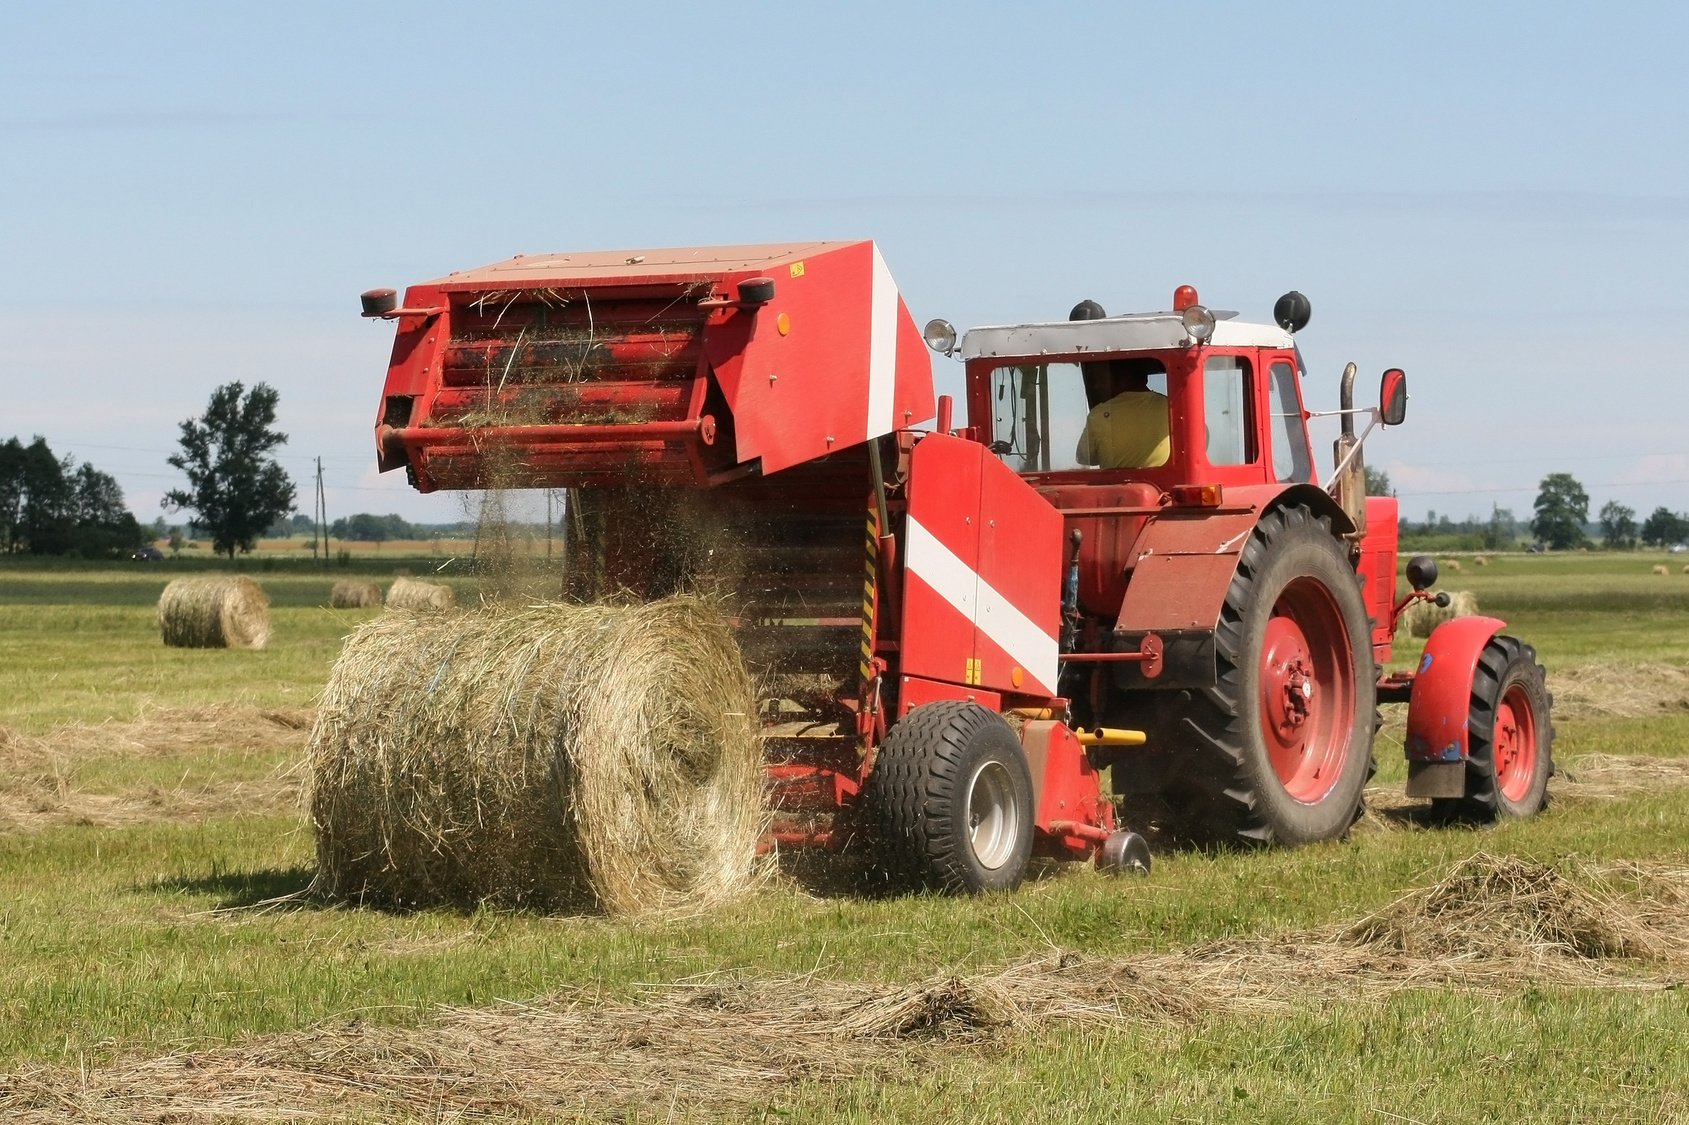 Modern technology such as the automated hay baler and the tractor make harvesting hay much more efficient than ever before.